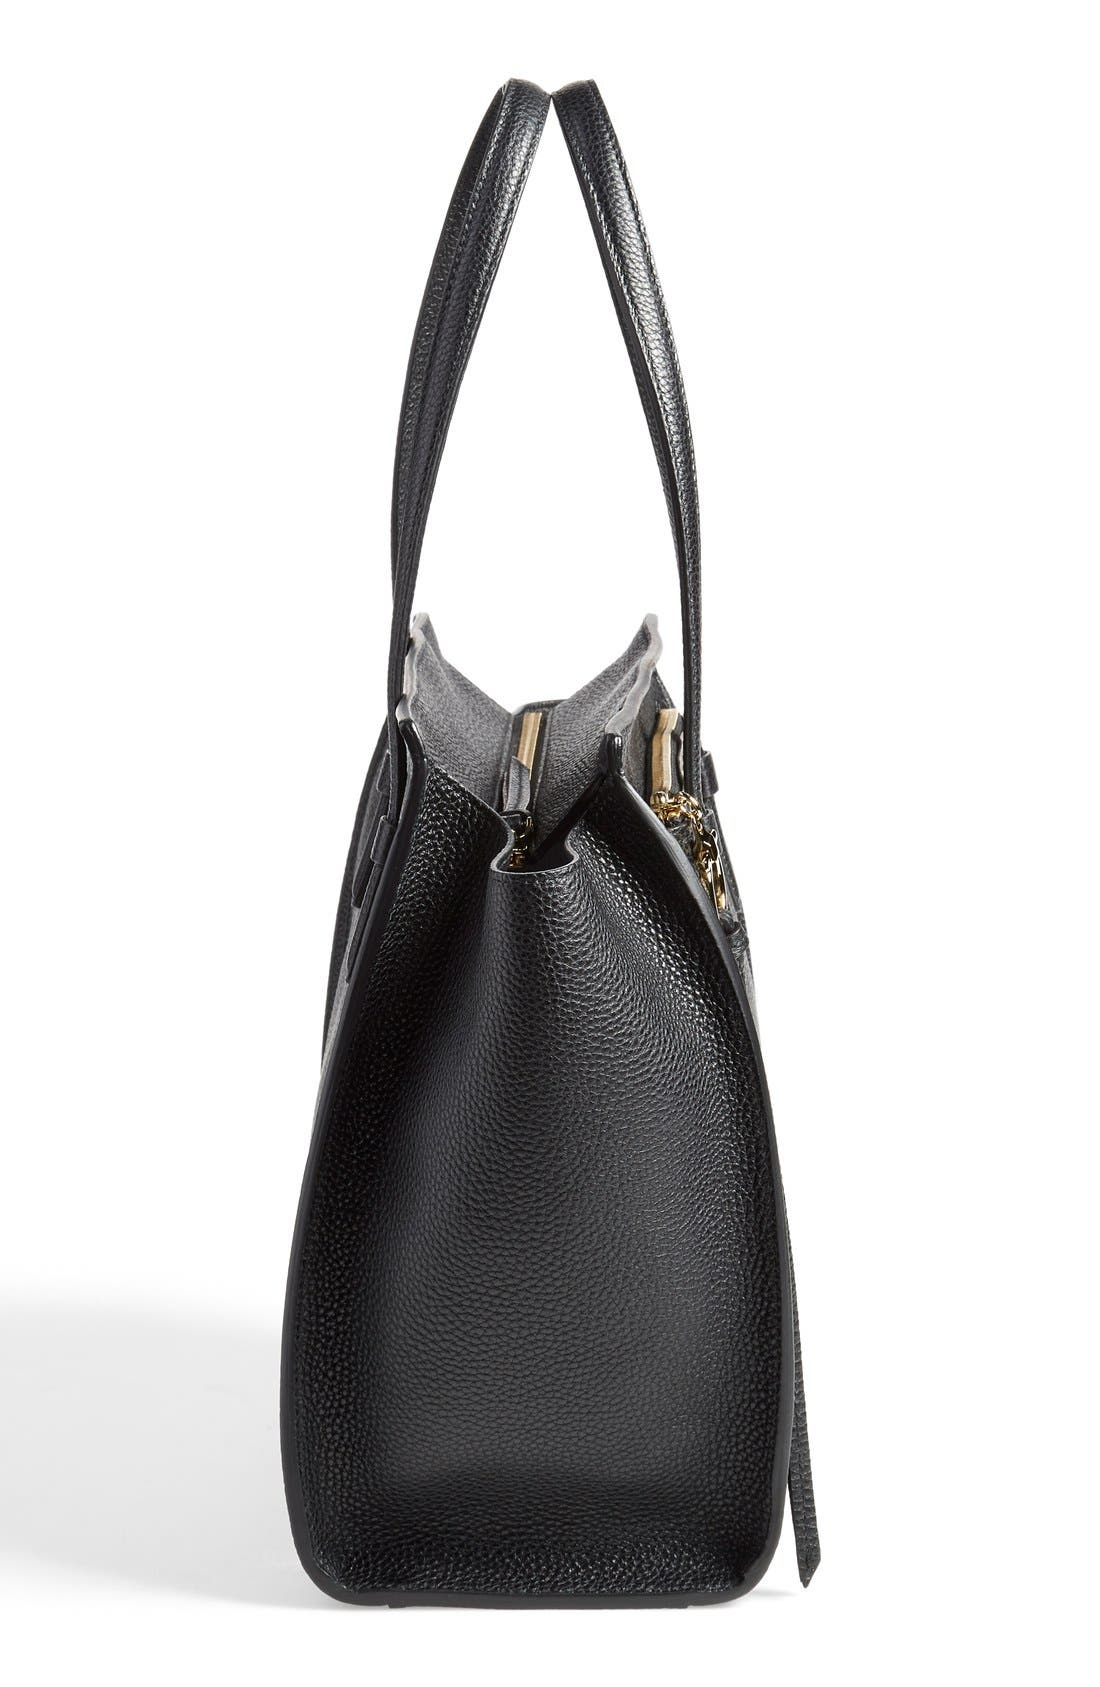 Medium Amy Calfskin Leather Tote,                             Alternate thumbnail 4, color,                             001